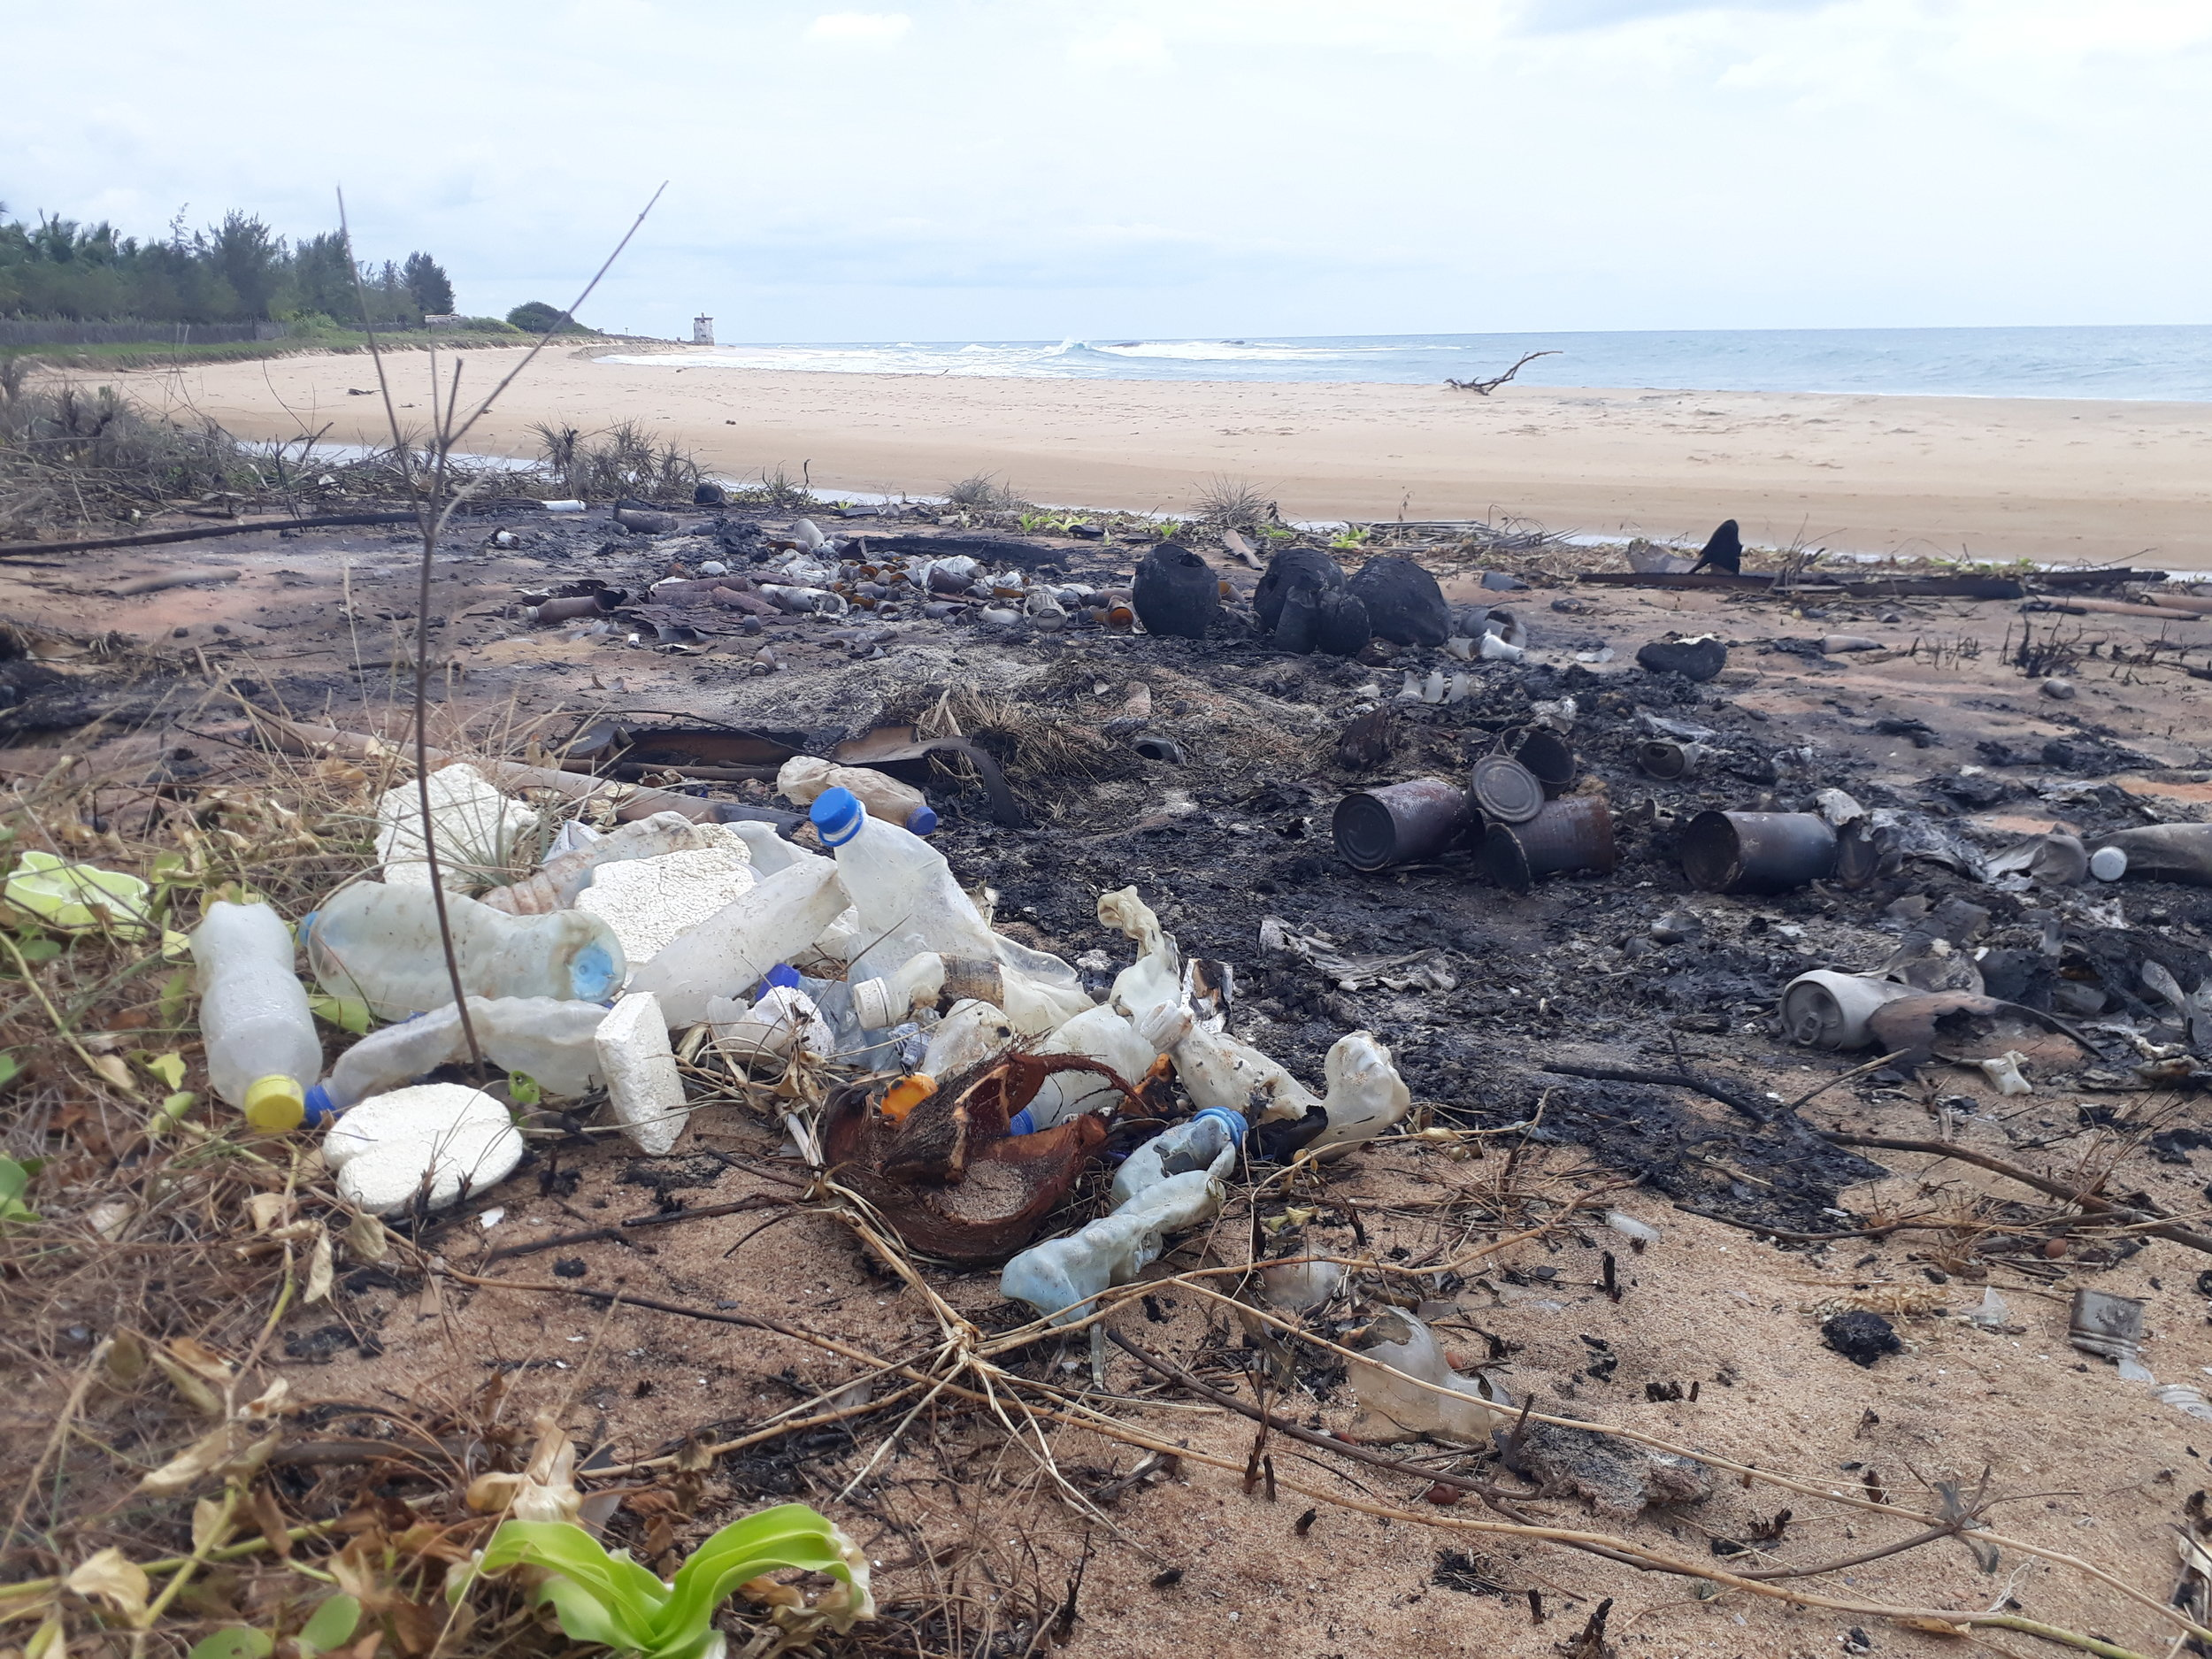 In case you were wondering where most of the plastic trash is ending up ... sadly quite often in flames.